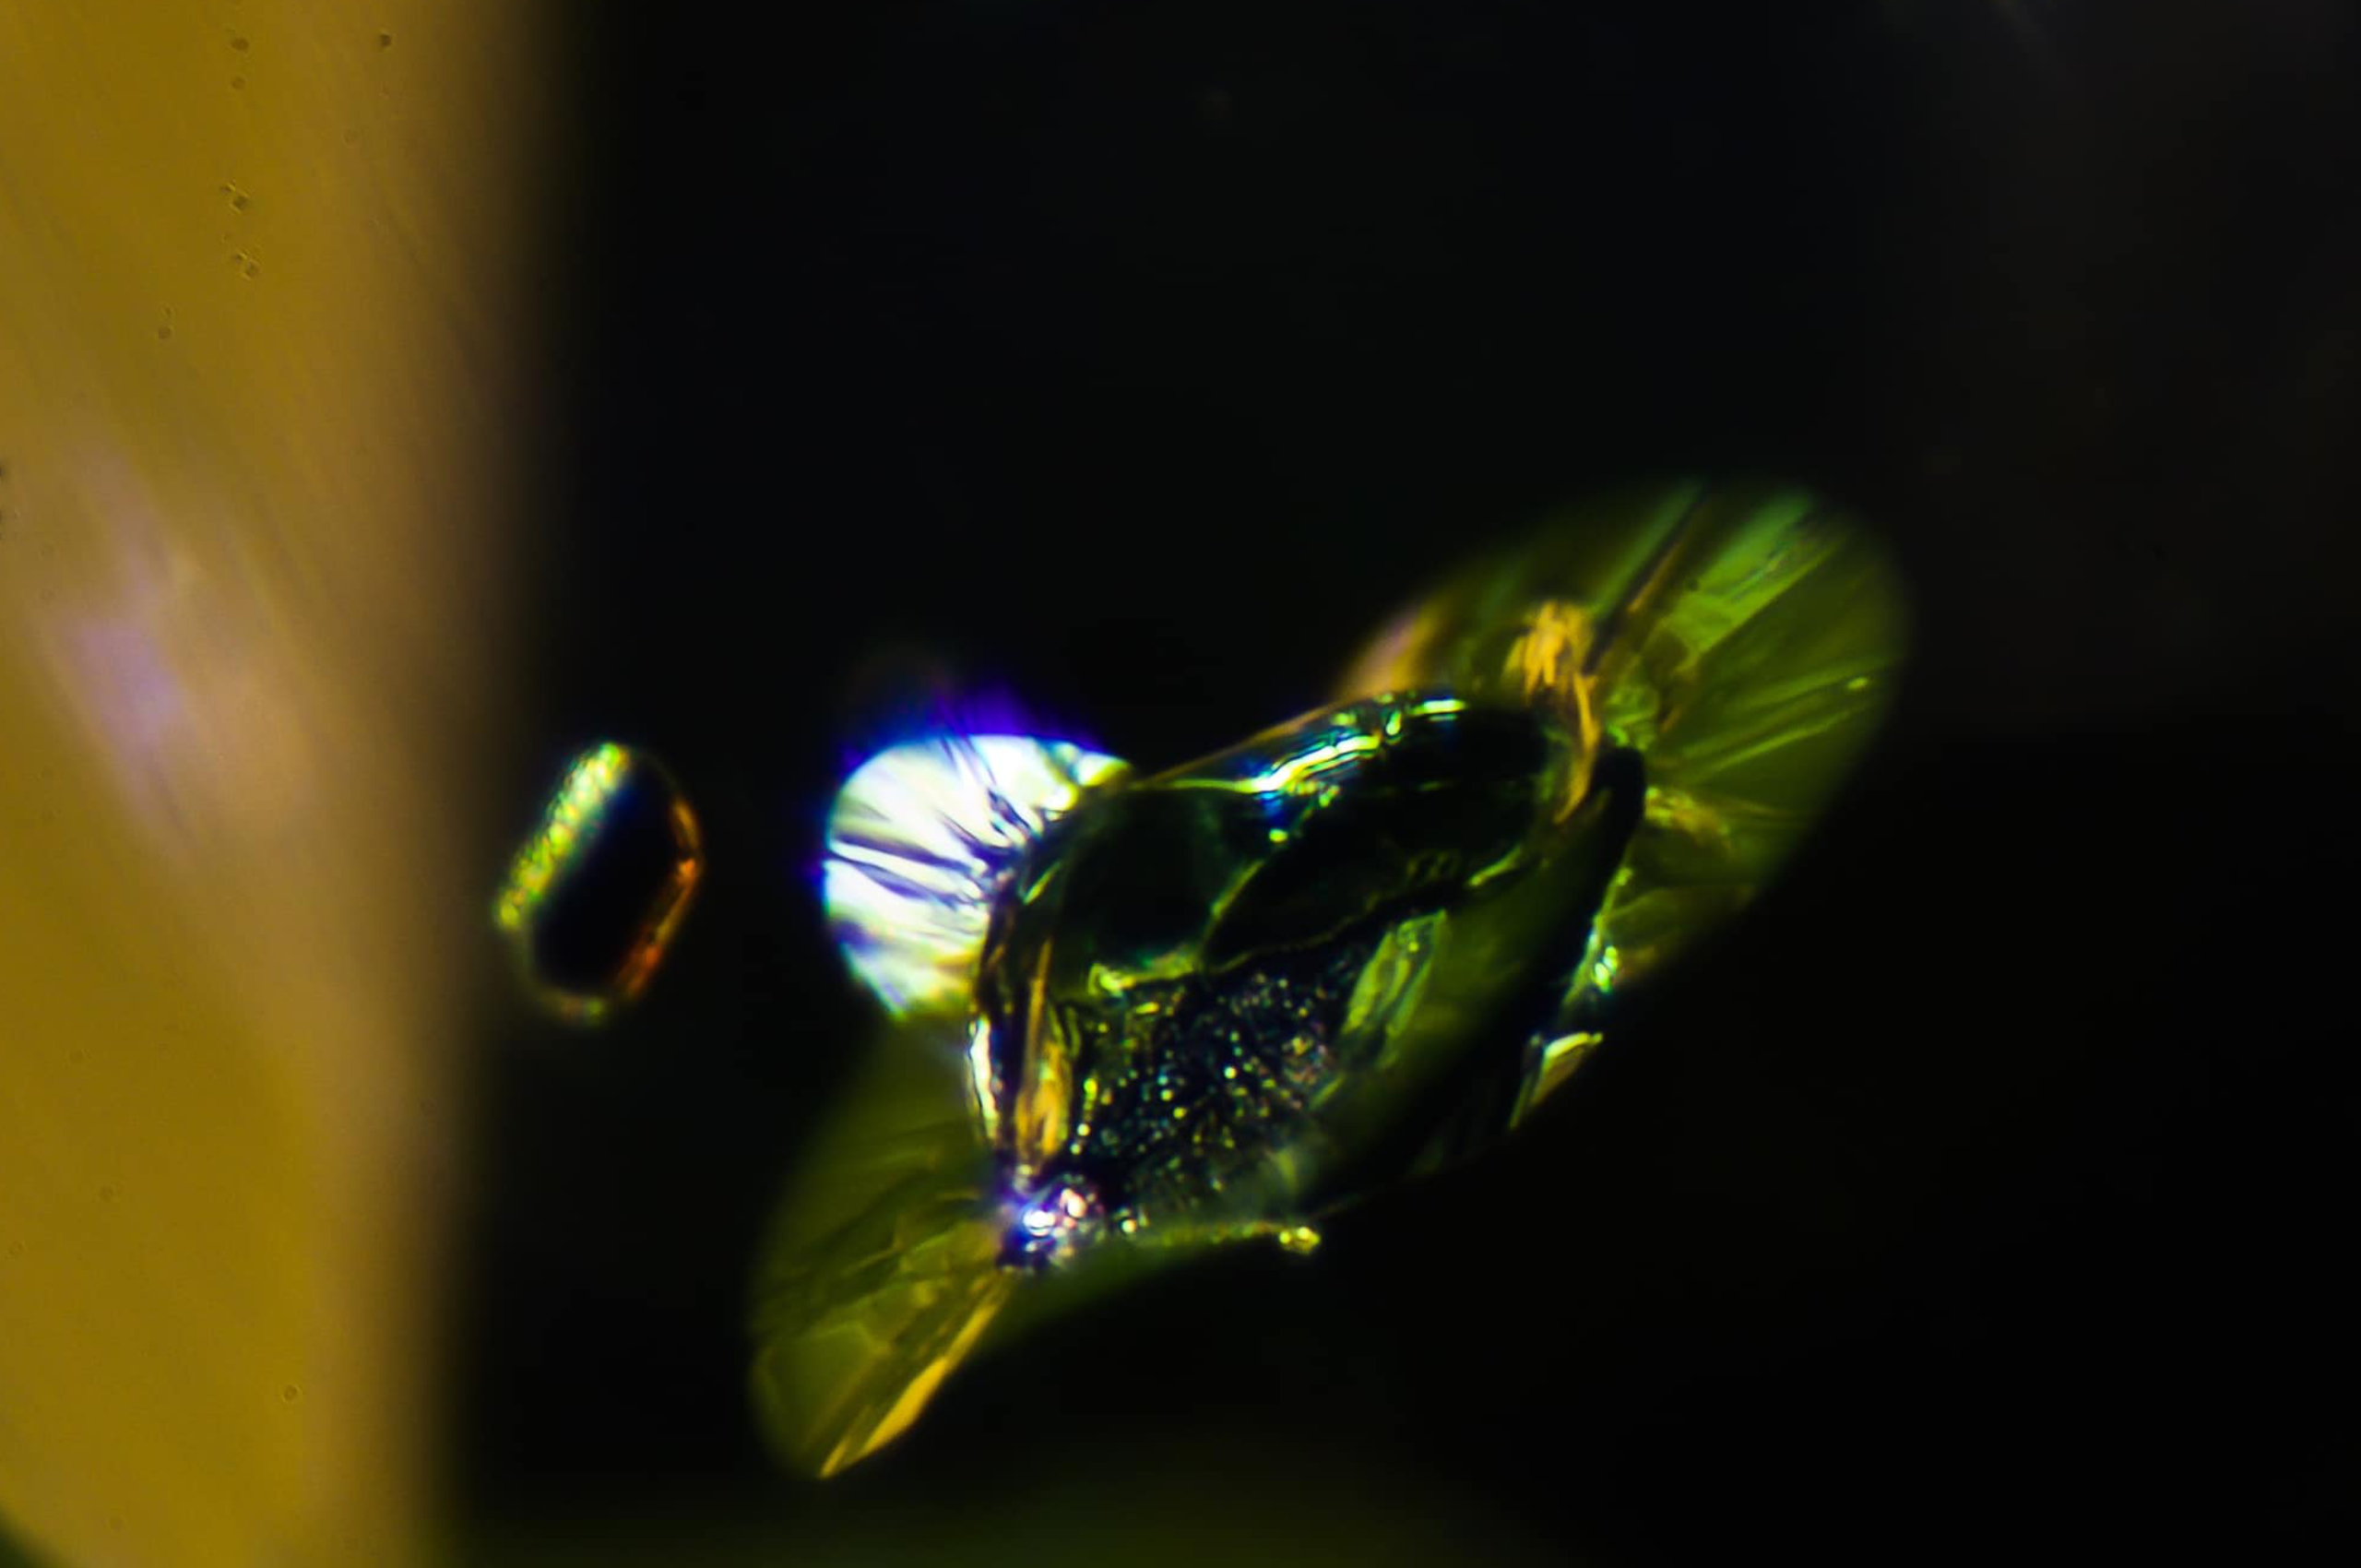 Lilypad inclusion in Peridot. Photo by Reginald Greindl